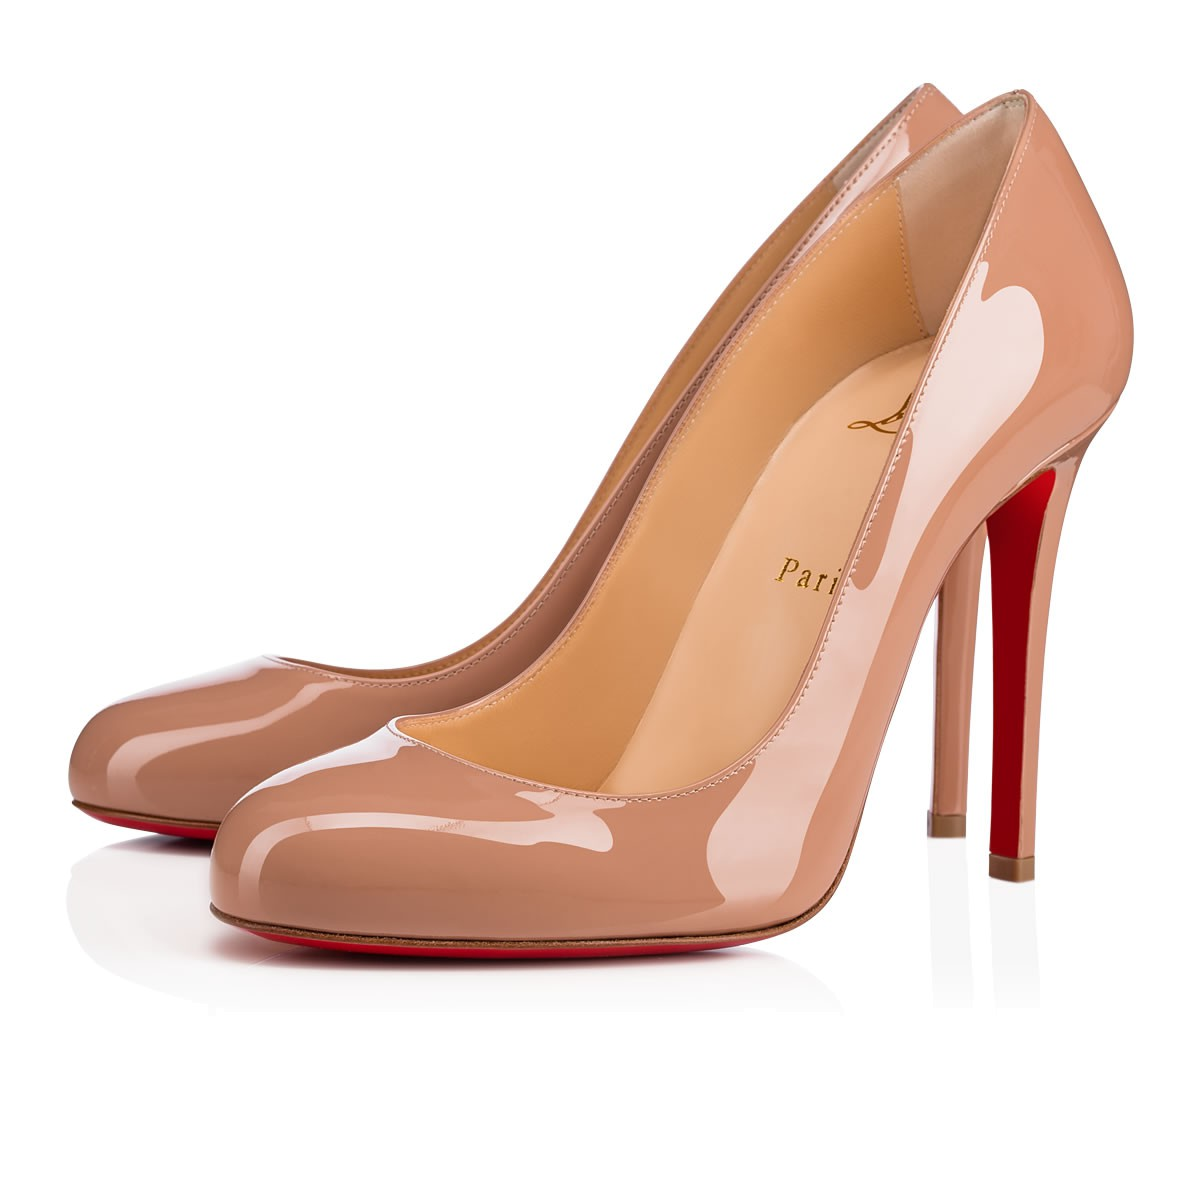 FIFILLE 100 Nude Patent Leather - Women